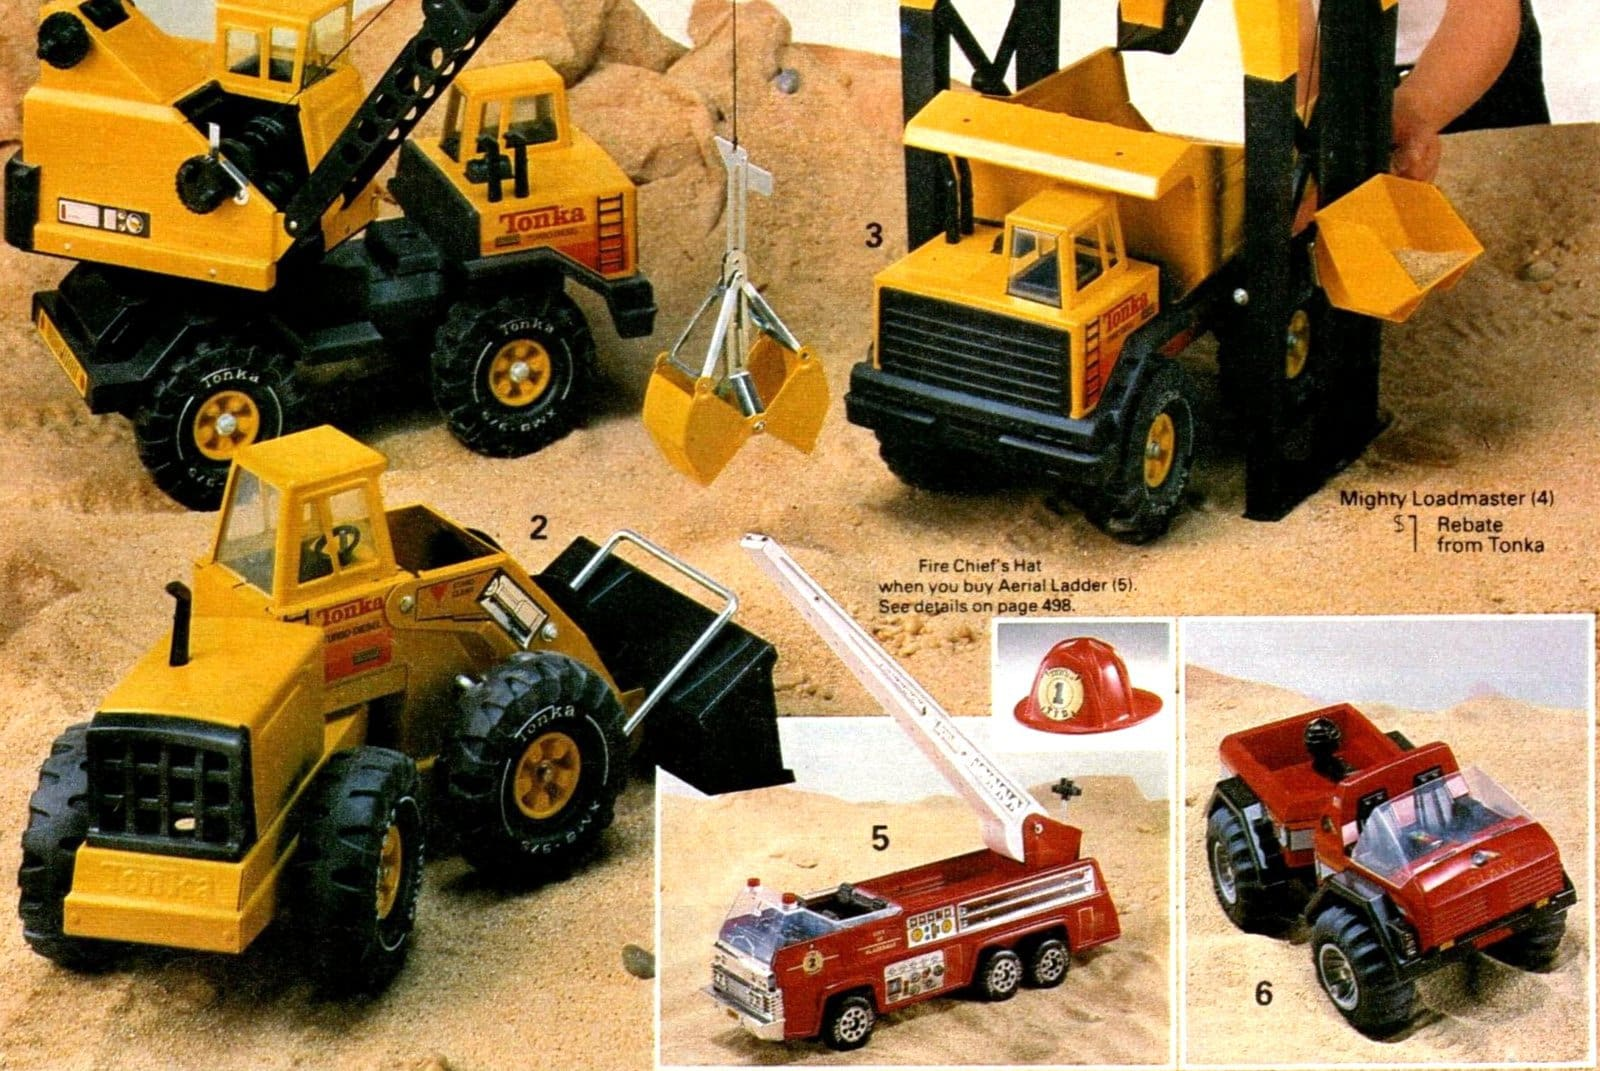 Vintage Tonka truck toys from 1984 (1)